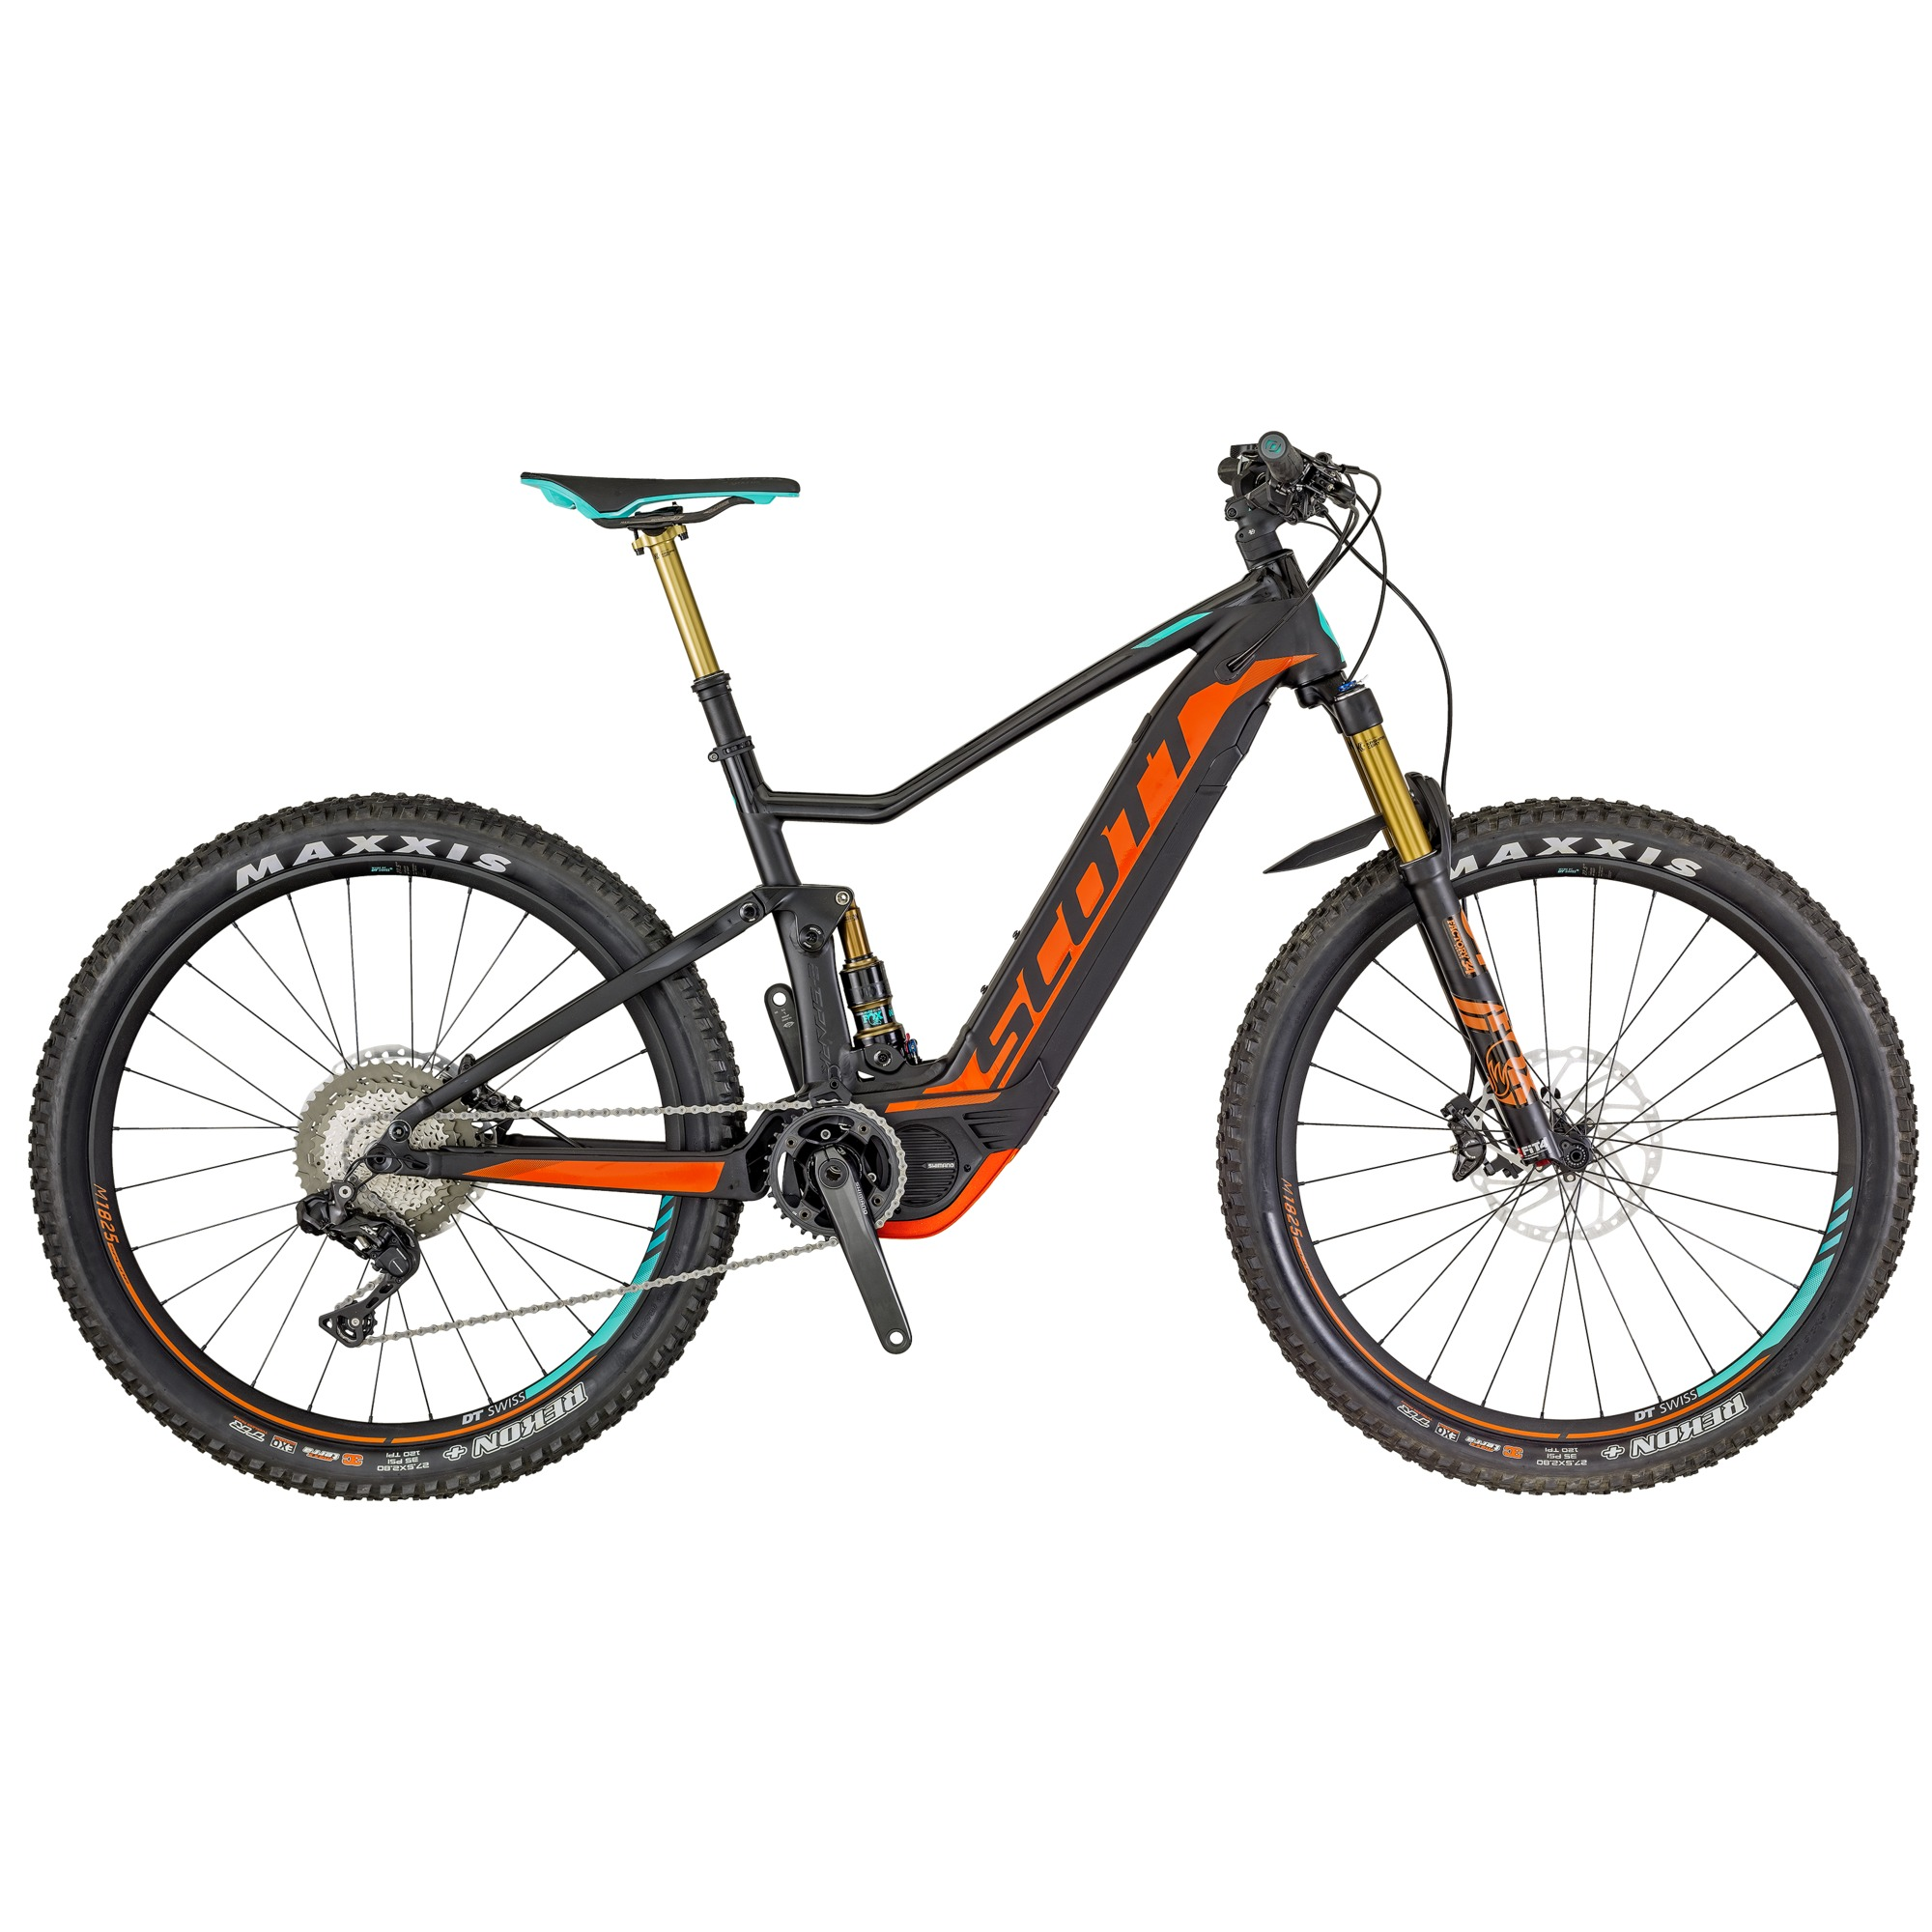 SCOTT E-Spark 700 Tuned Bike XL - Zweirad Homann